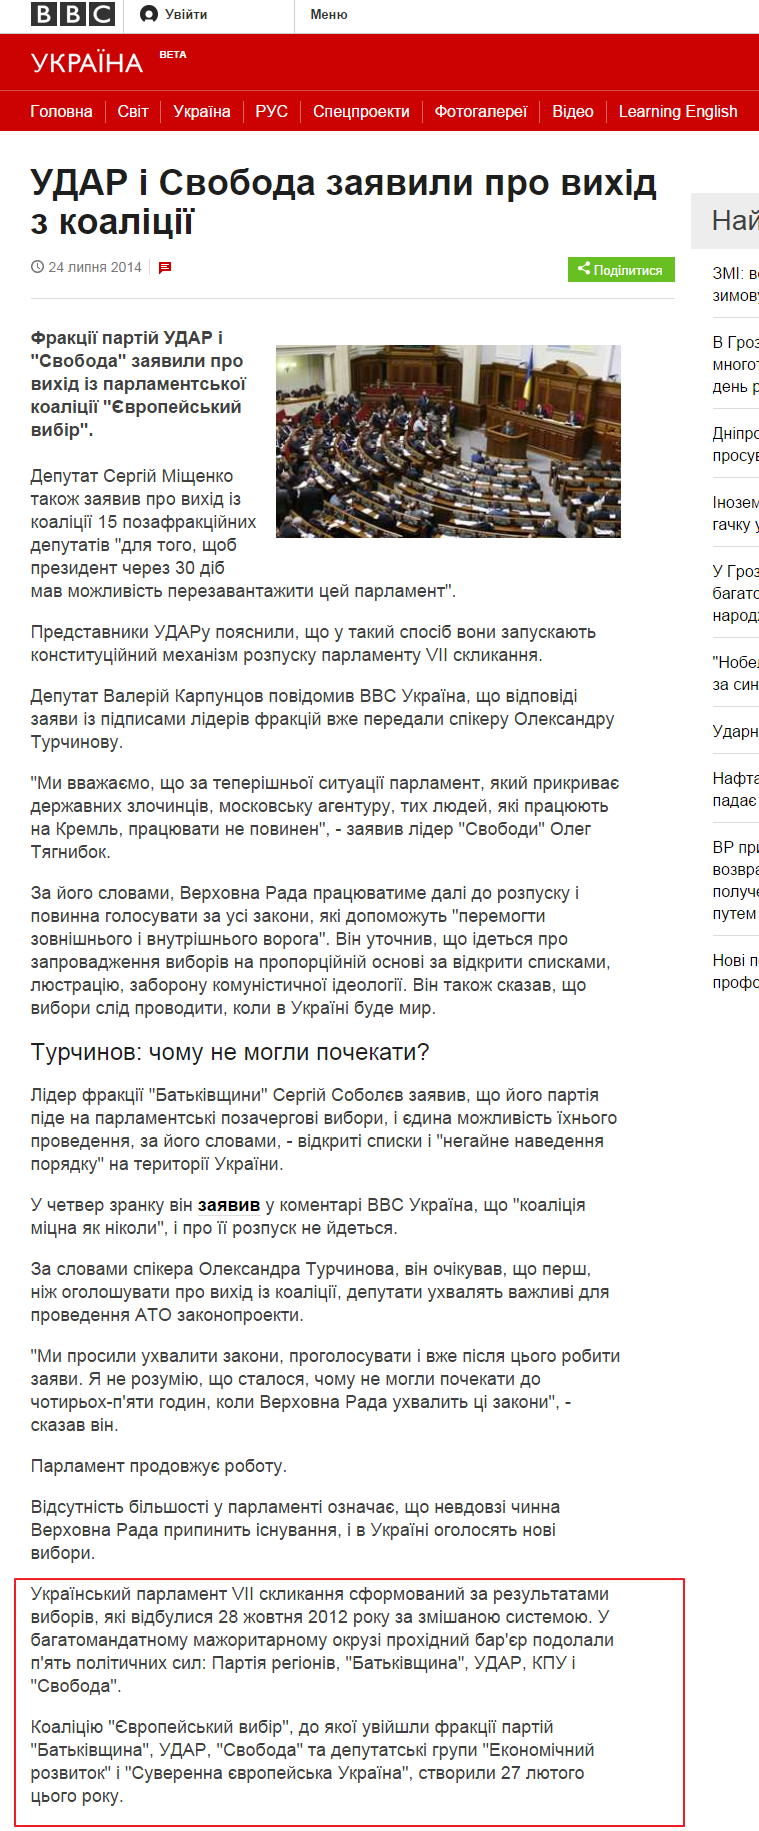 http://www.bbc.co.uk/ukrainian/news_in_brief/2014/07/140724_rl_udar_coalition